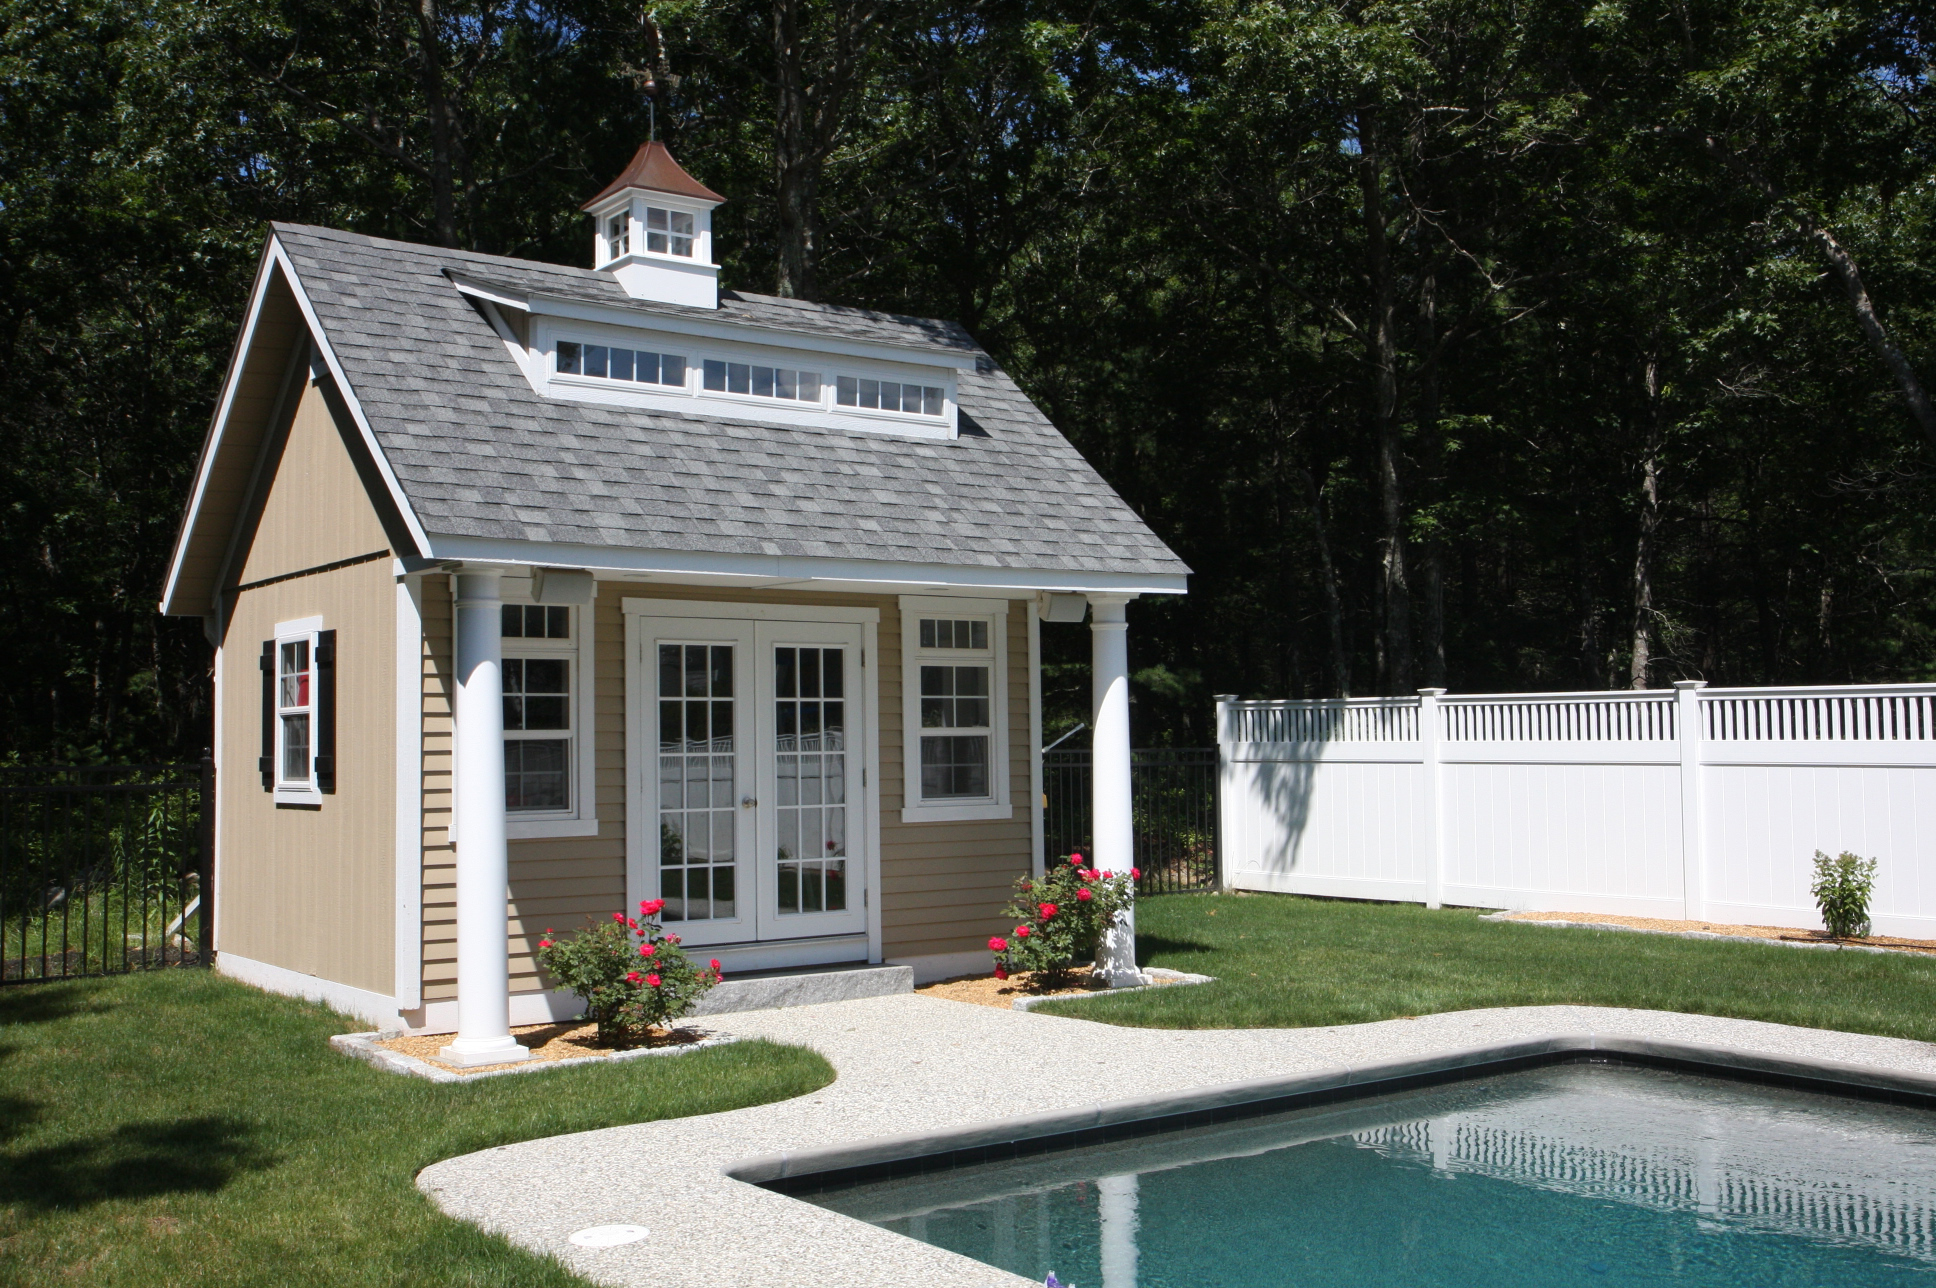 Pool Houses, Cabanas, Pool Sheds \u0026 Pool Side Bars | Homestead ...